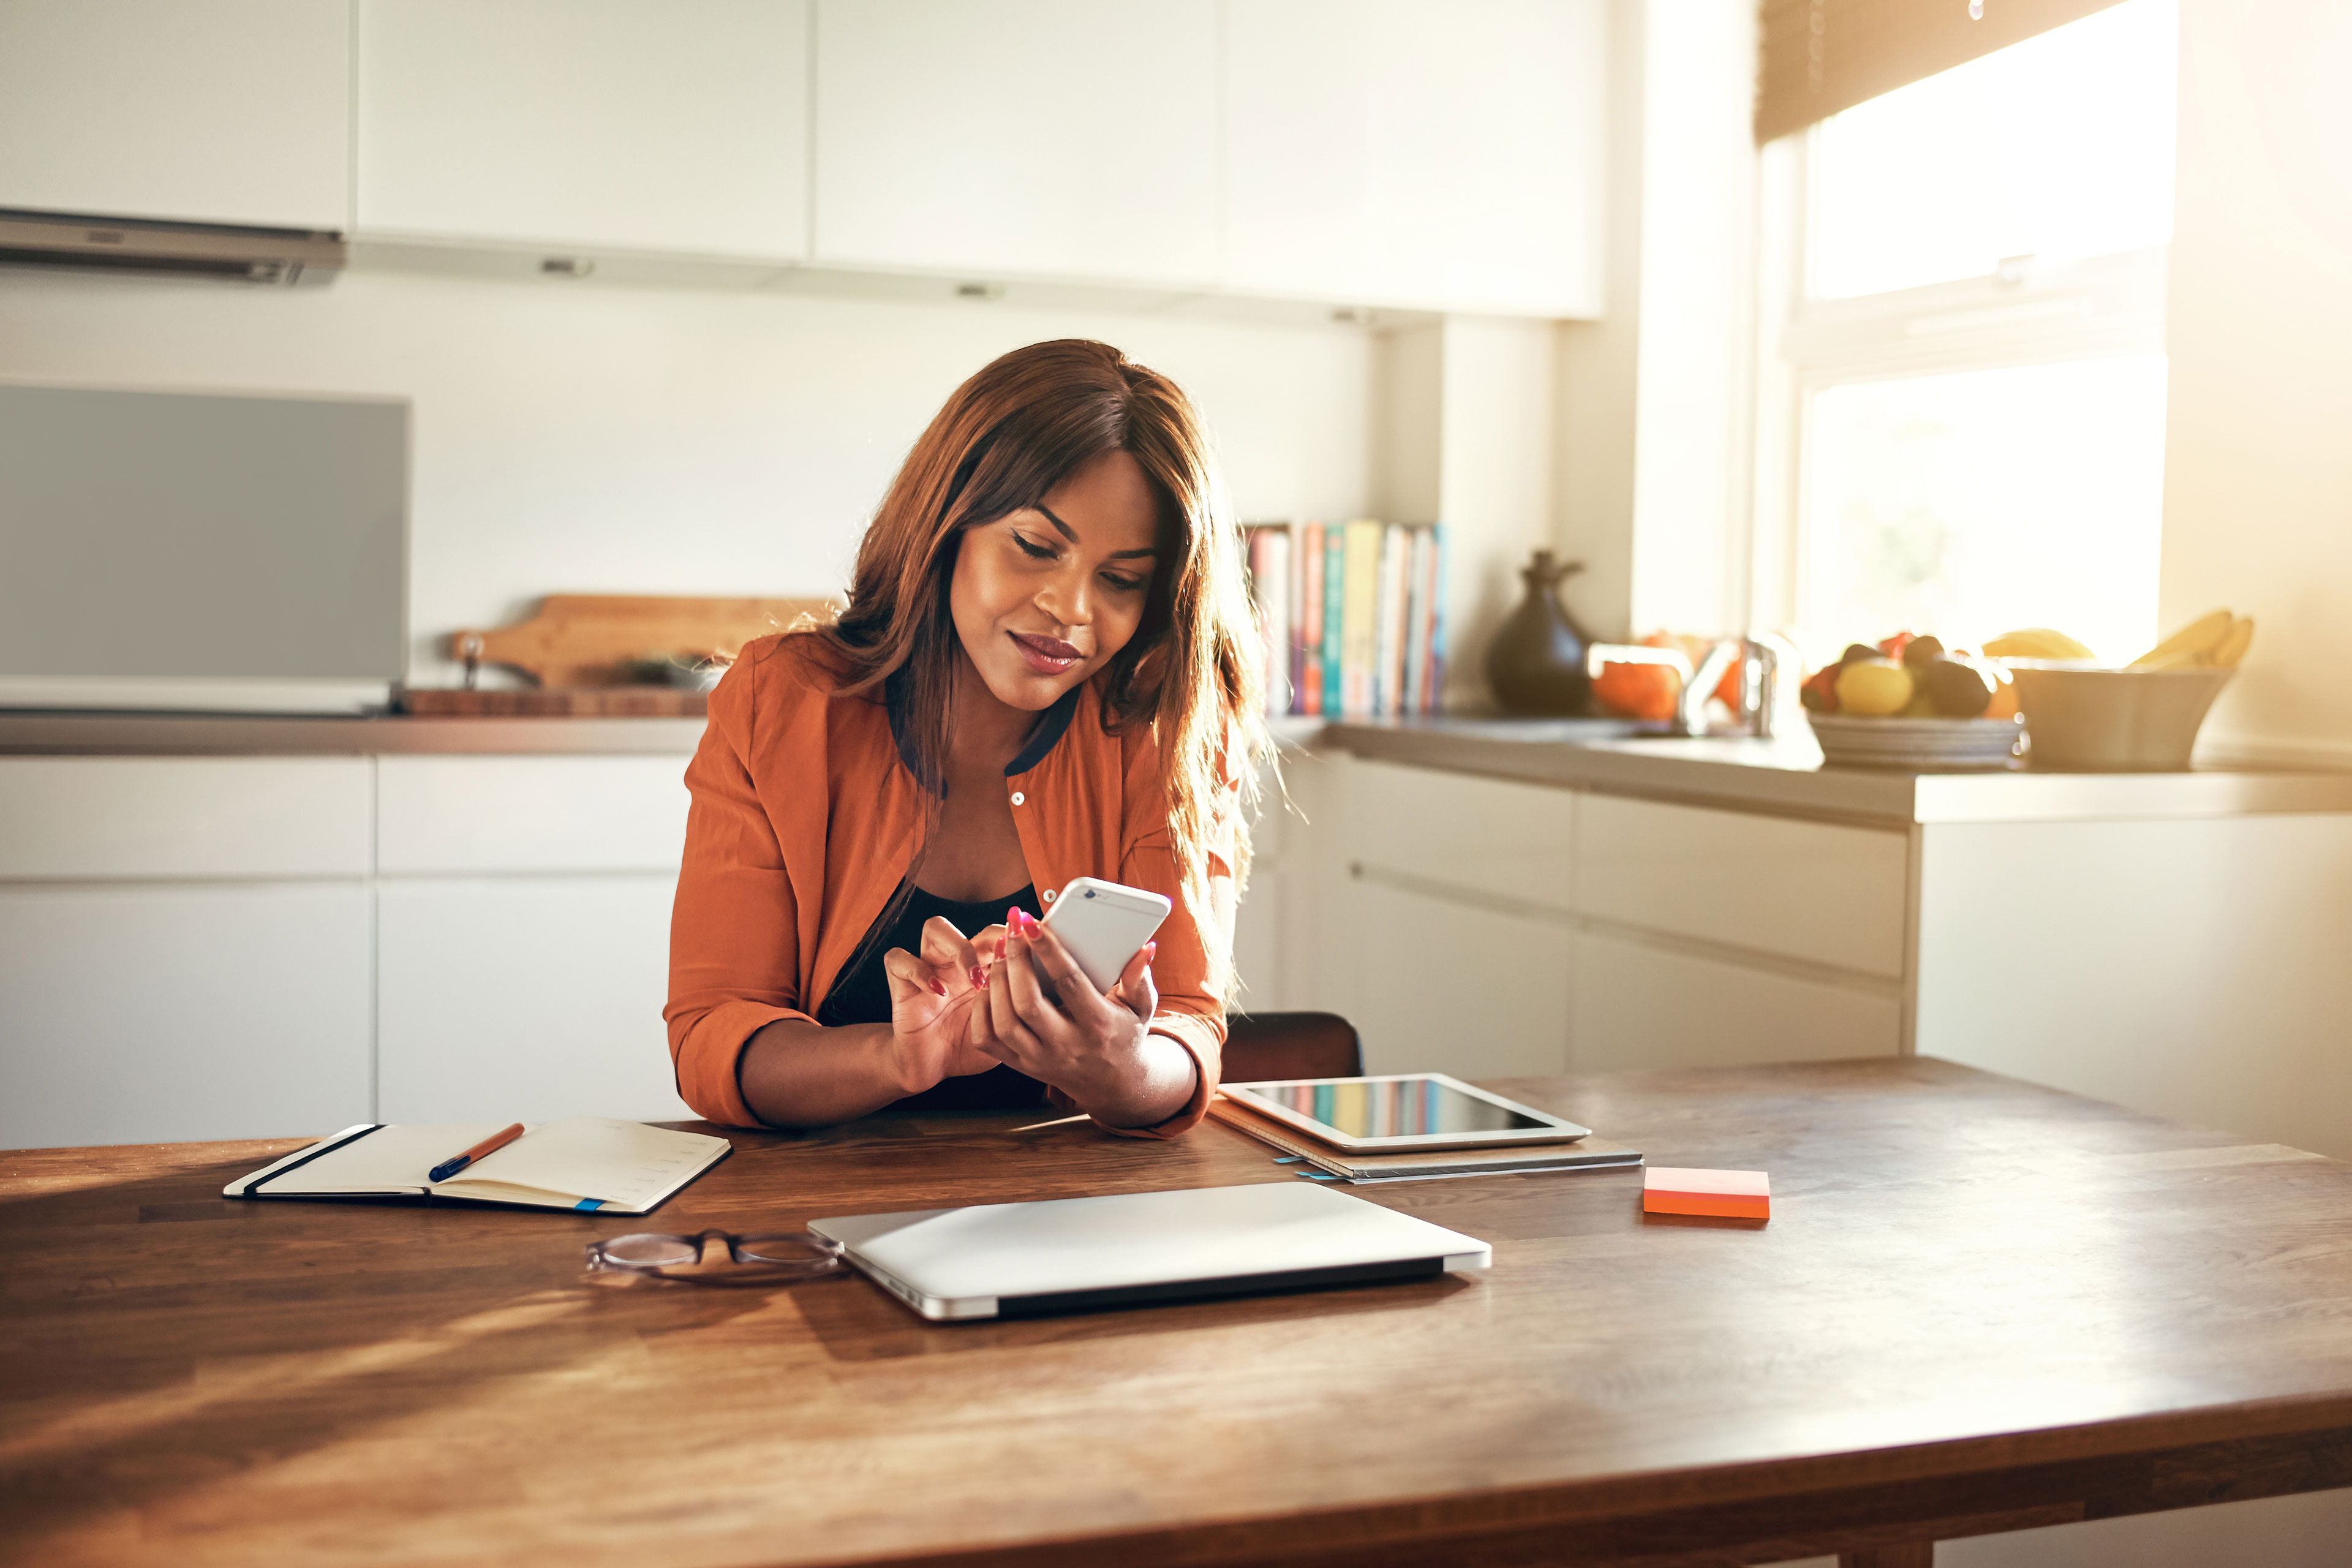 Woman looking at her phone at home